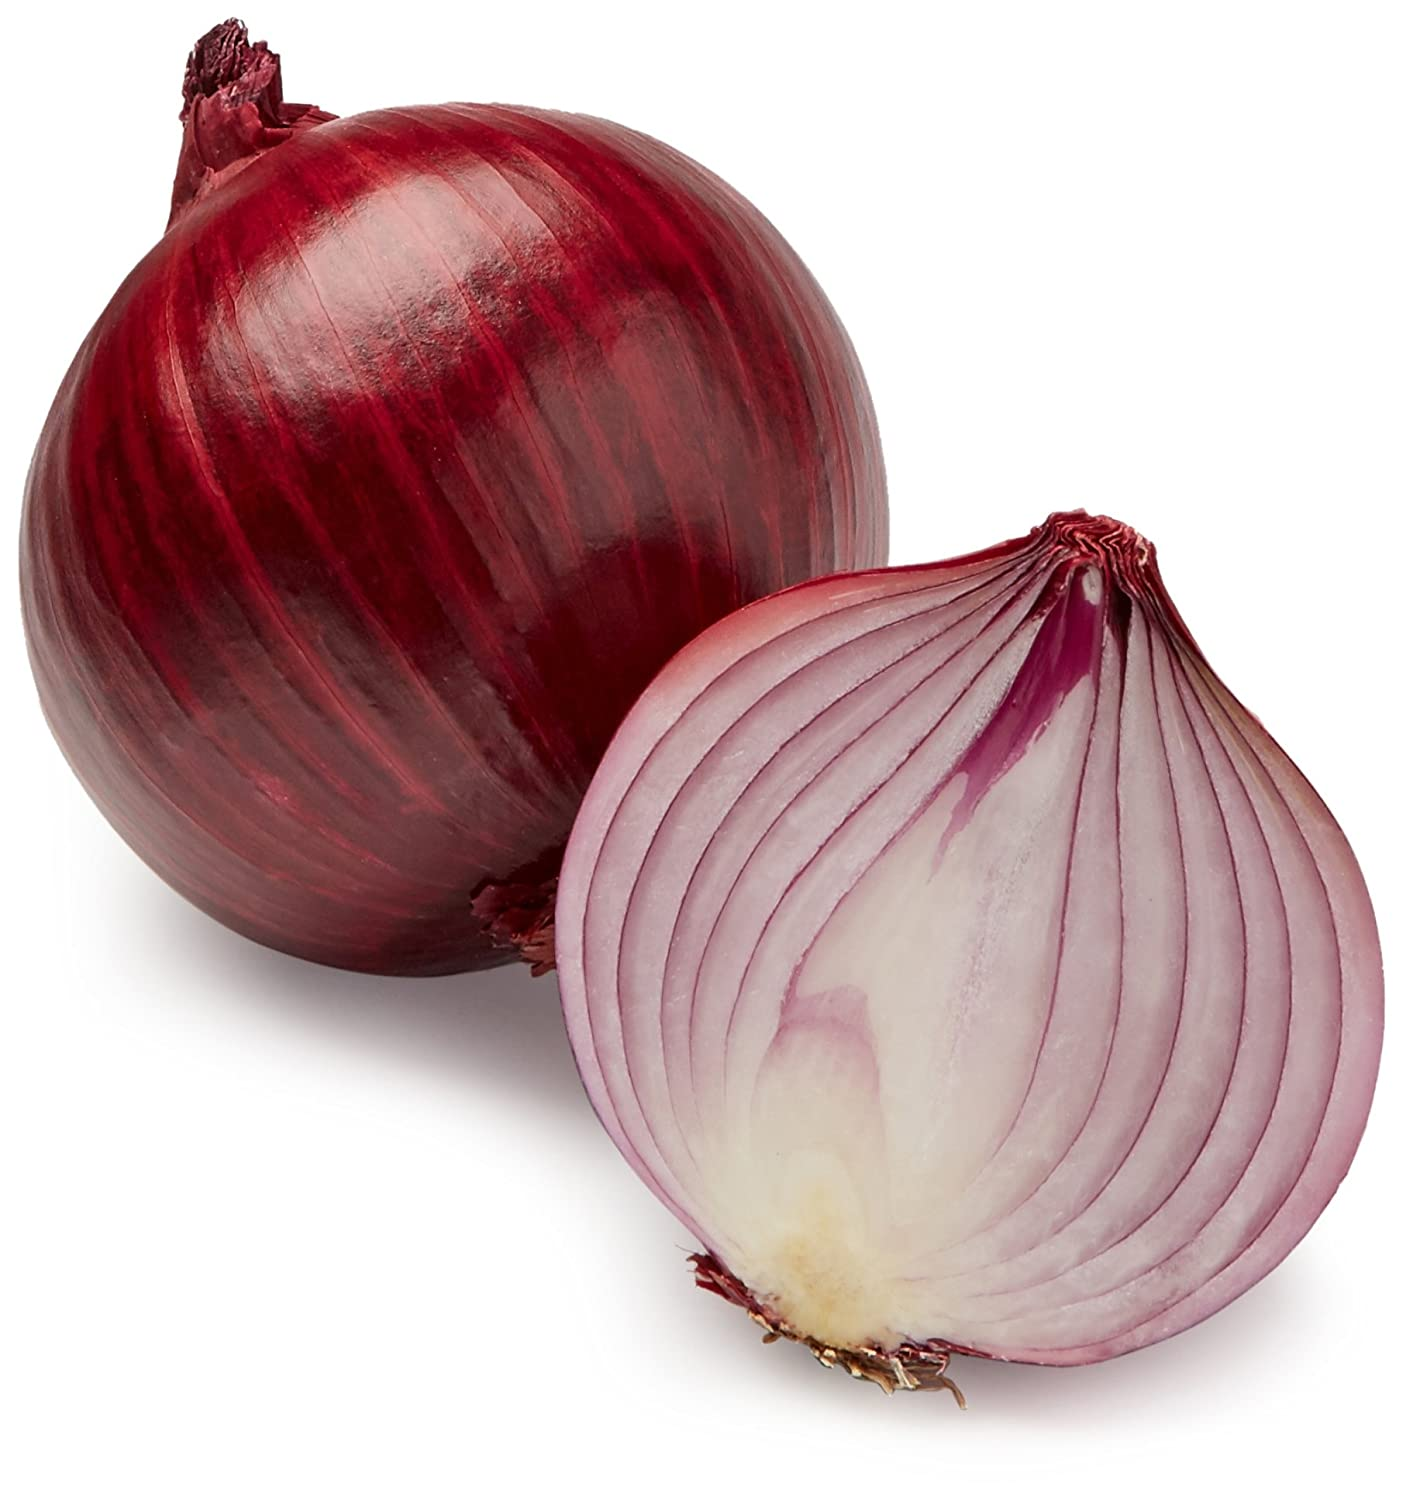 Image of Red Onions (1 = 150-200g)